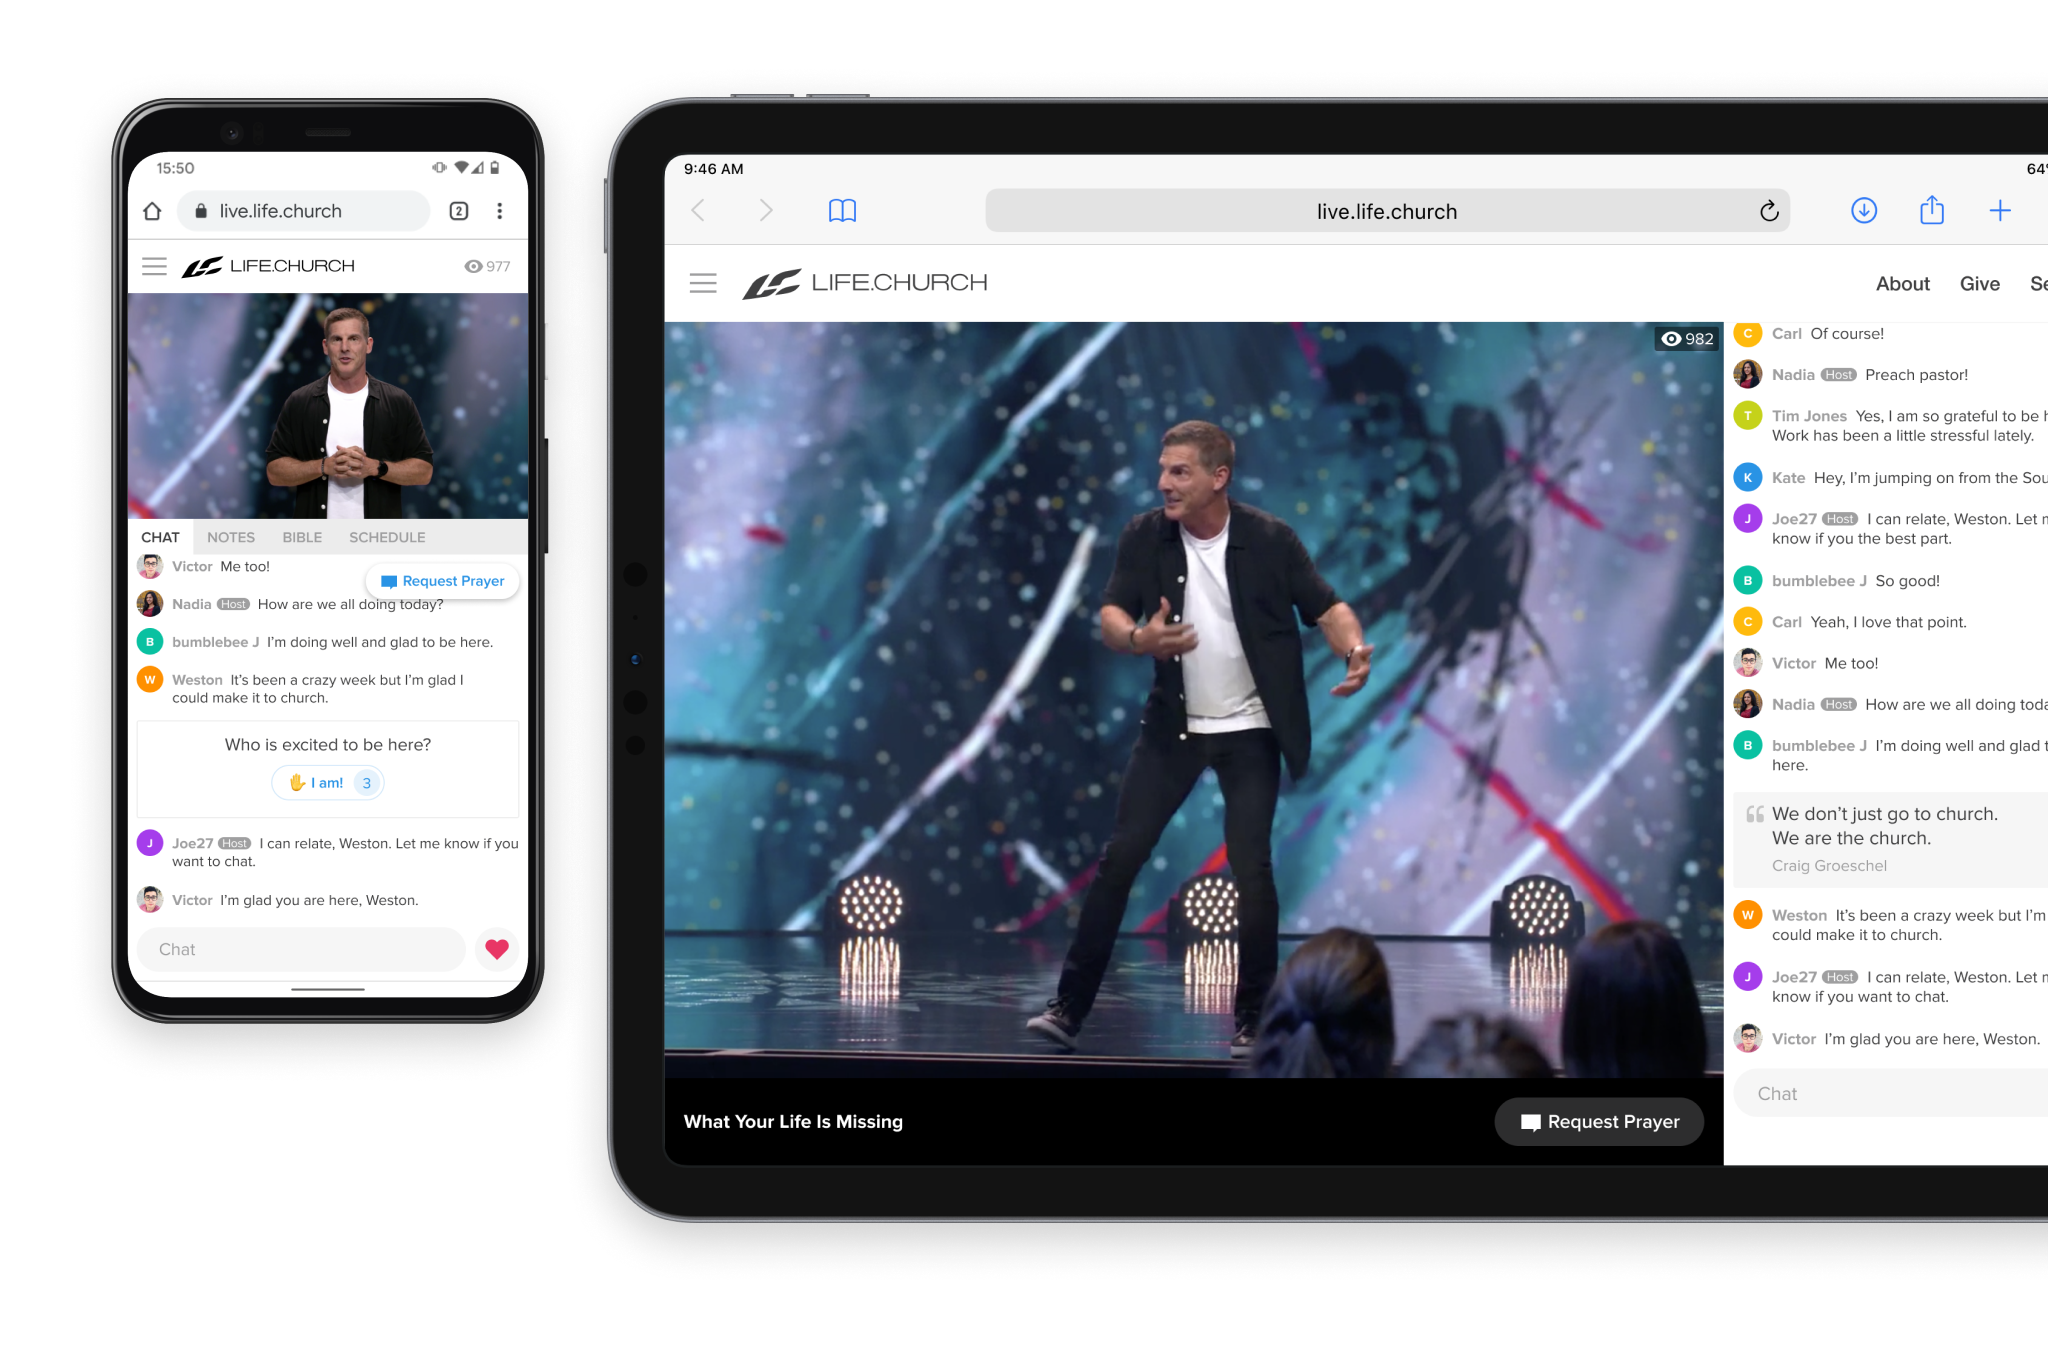 Online church experience on a tablet